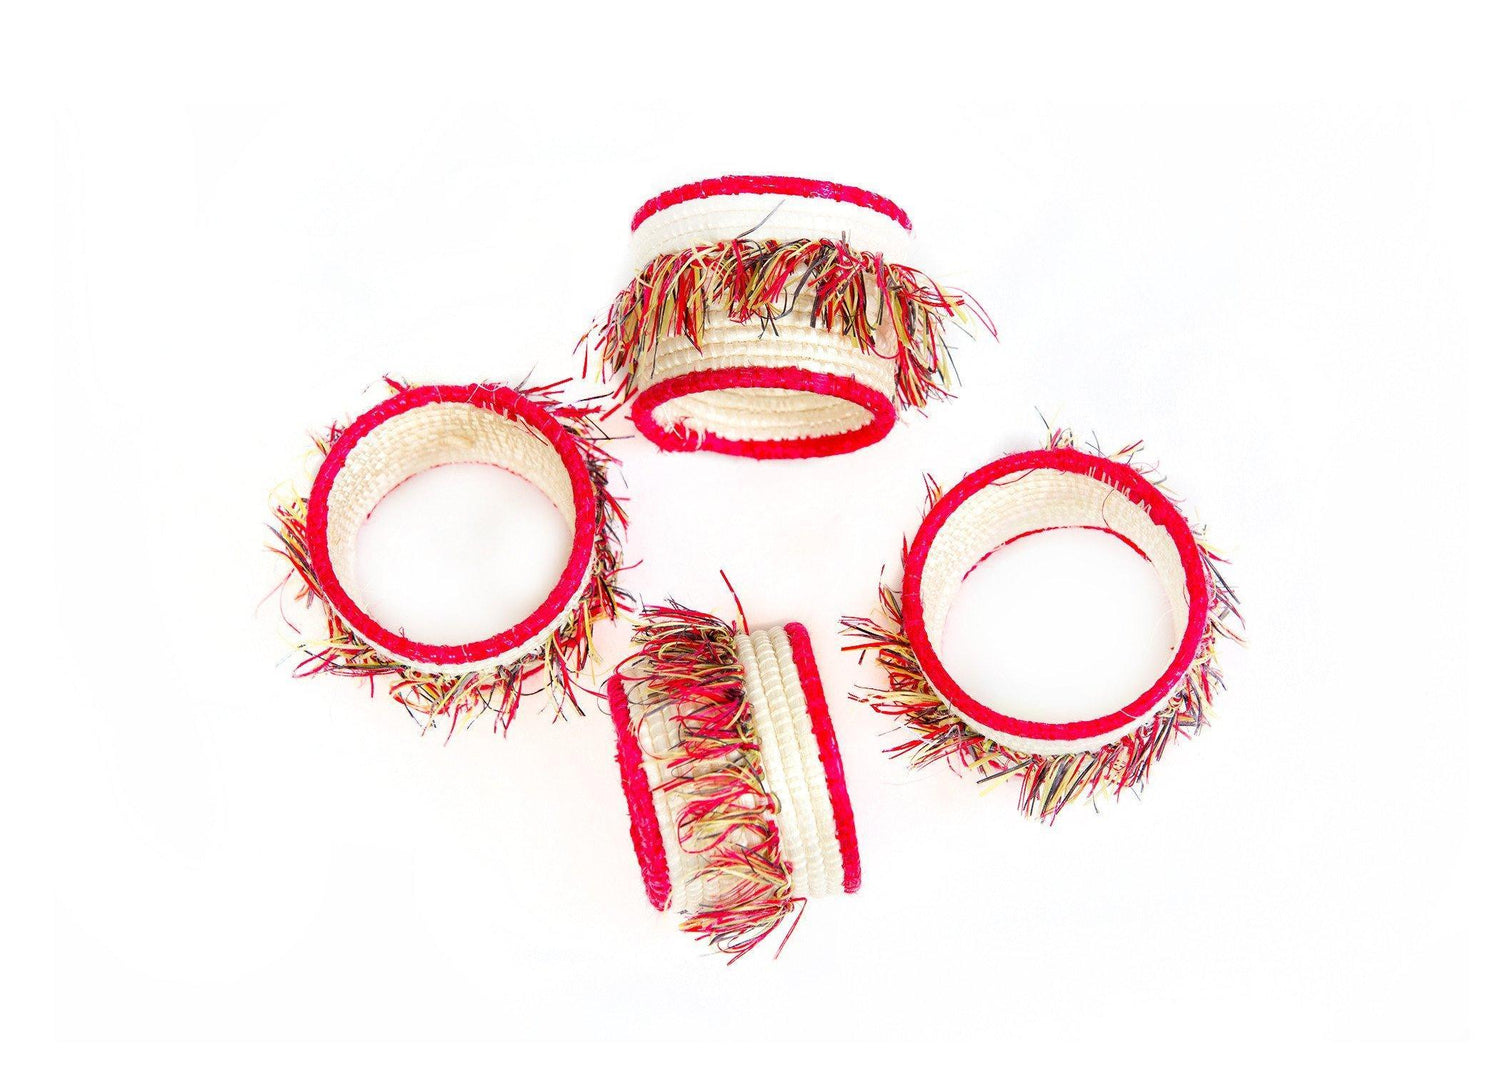 KAZI Fringed Hibiscus Napkin Rings, Set of 4 Napkin Accessories KAZI